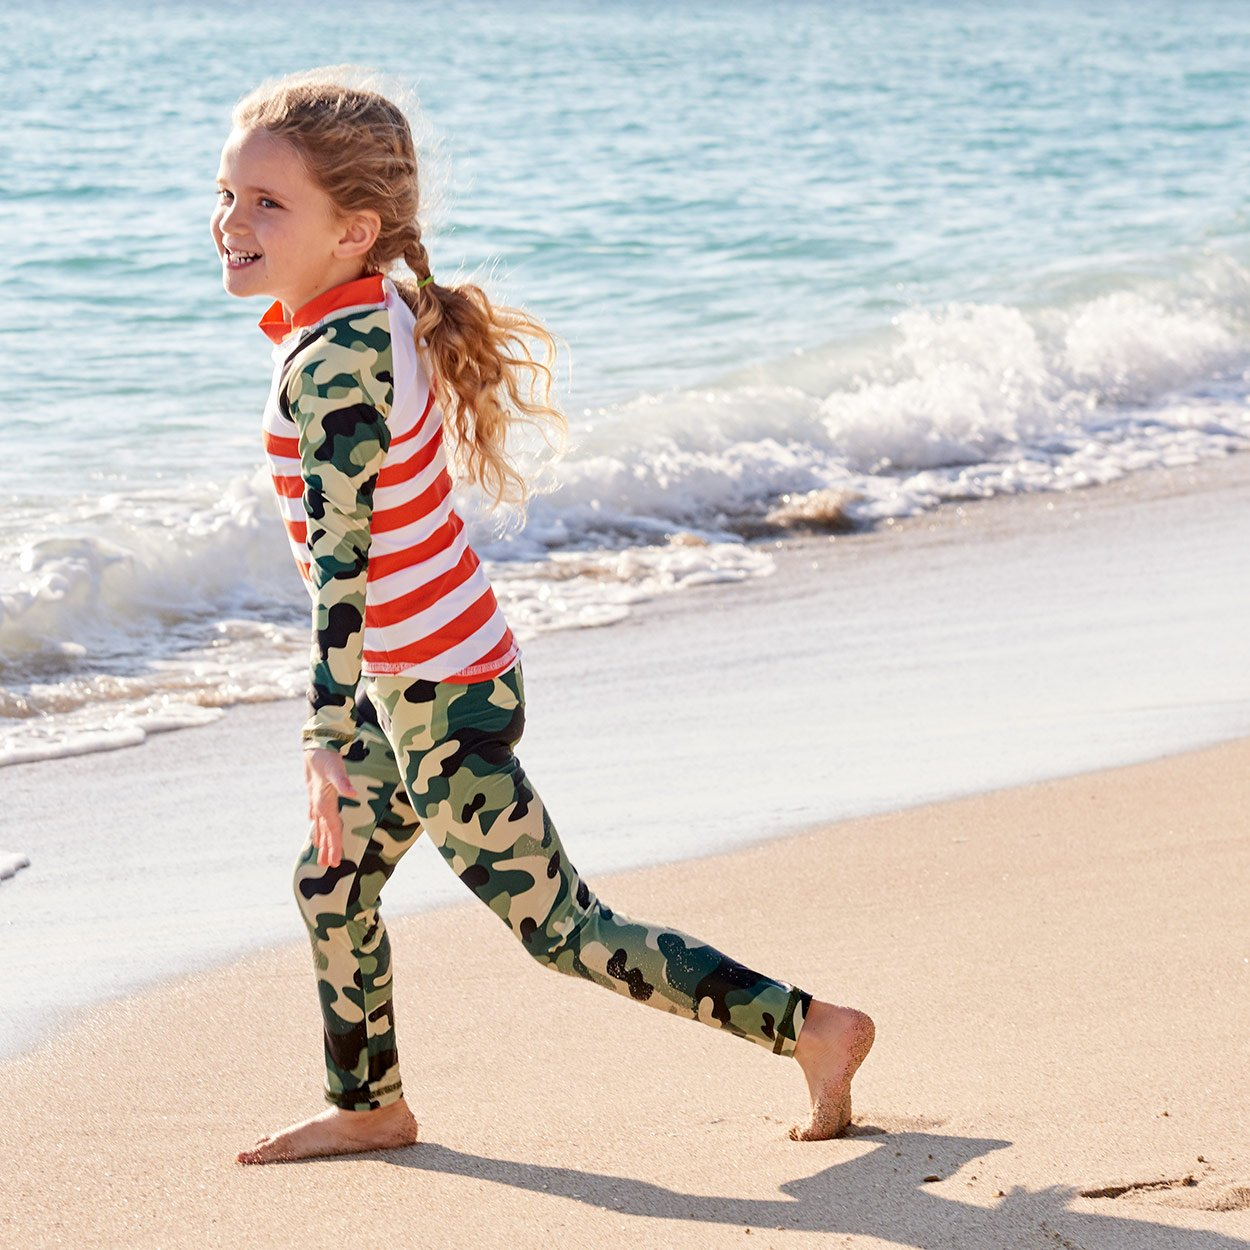 Green Camo 2Pc Rash Guard Set Girls Playing Tag On The Beach Sunpoplife